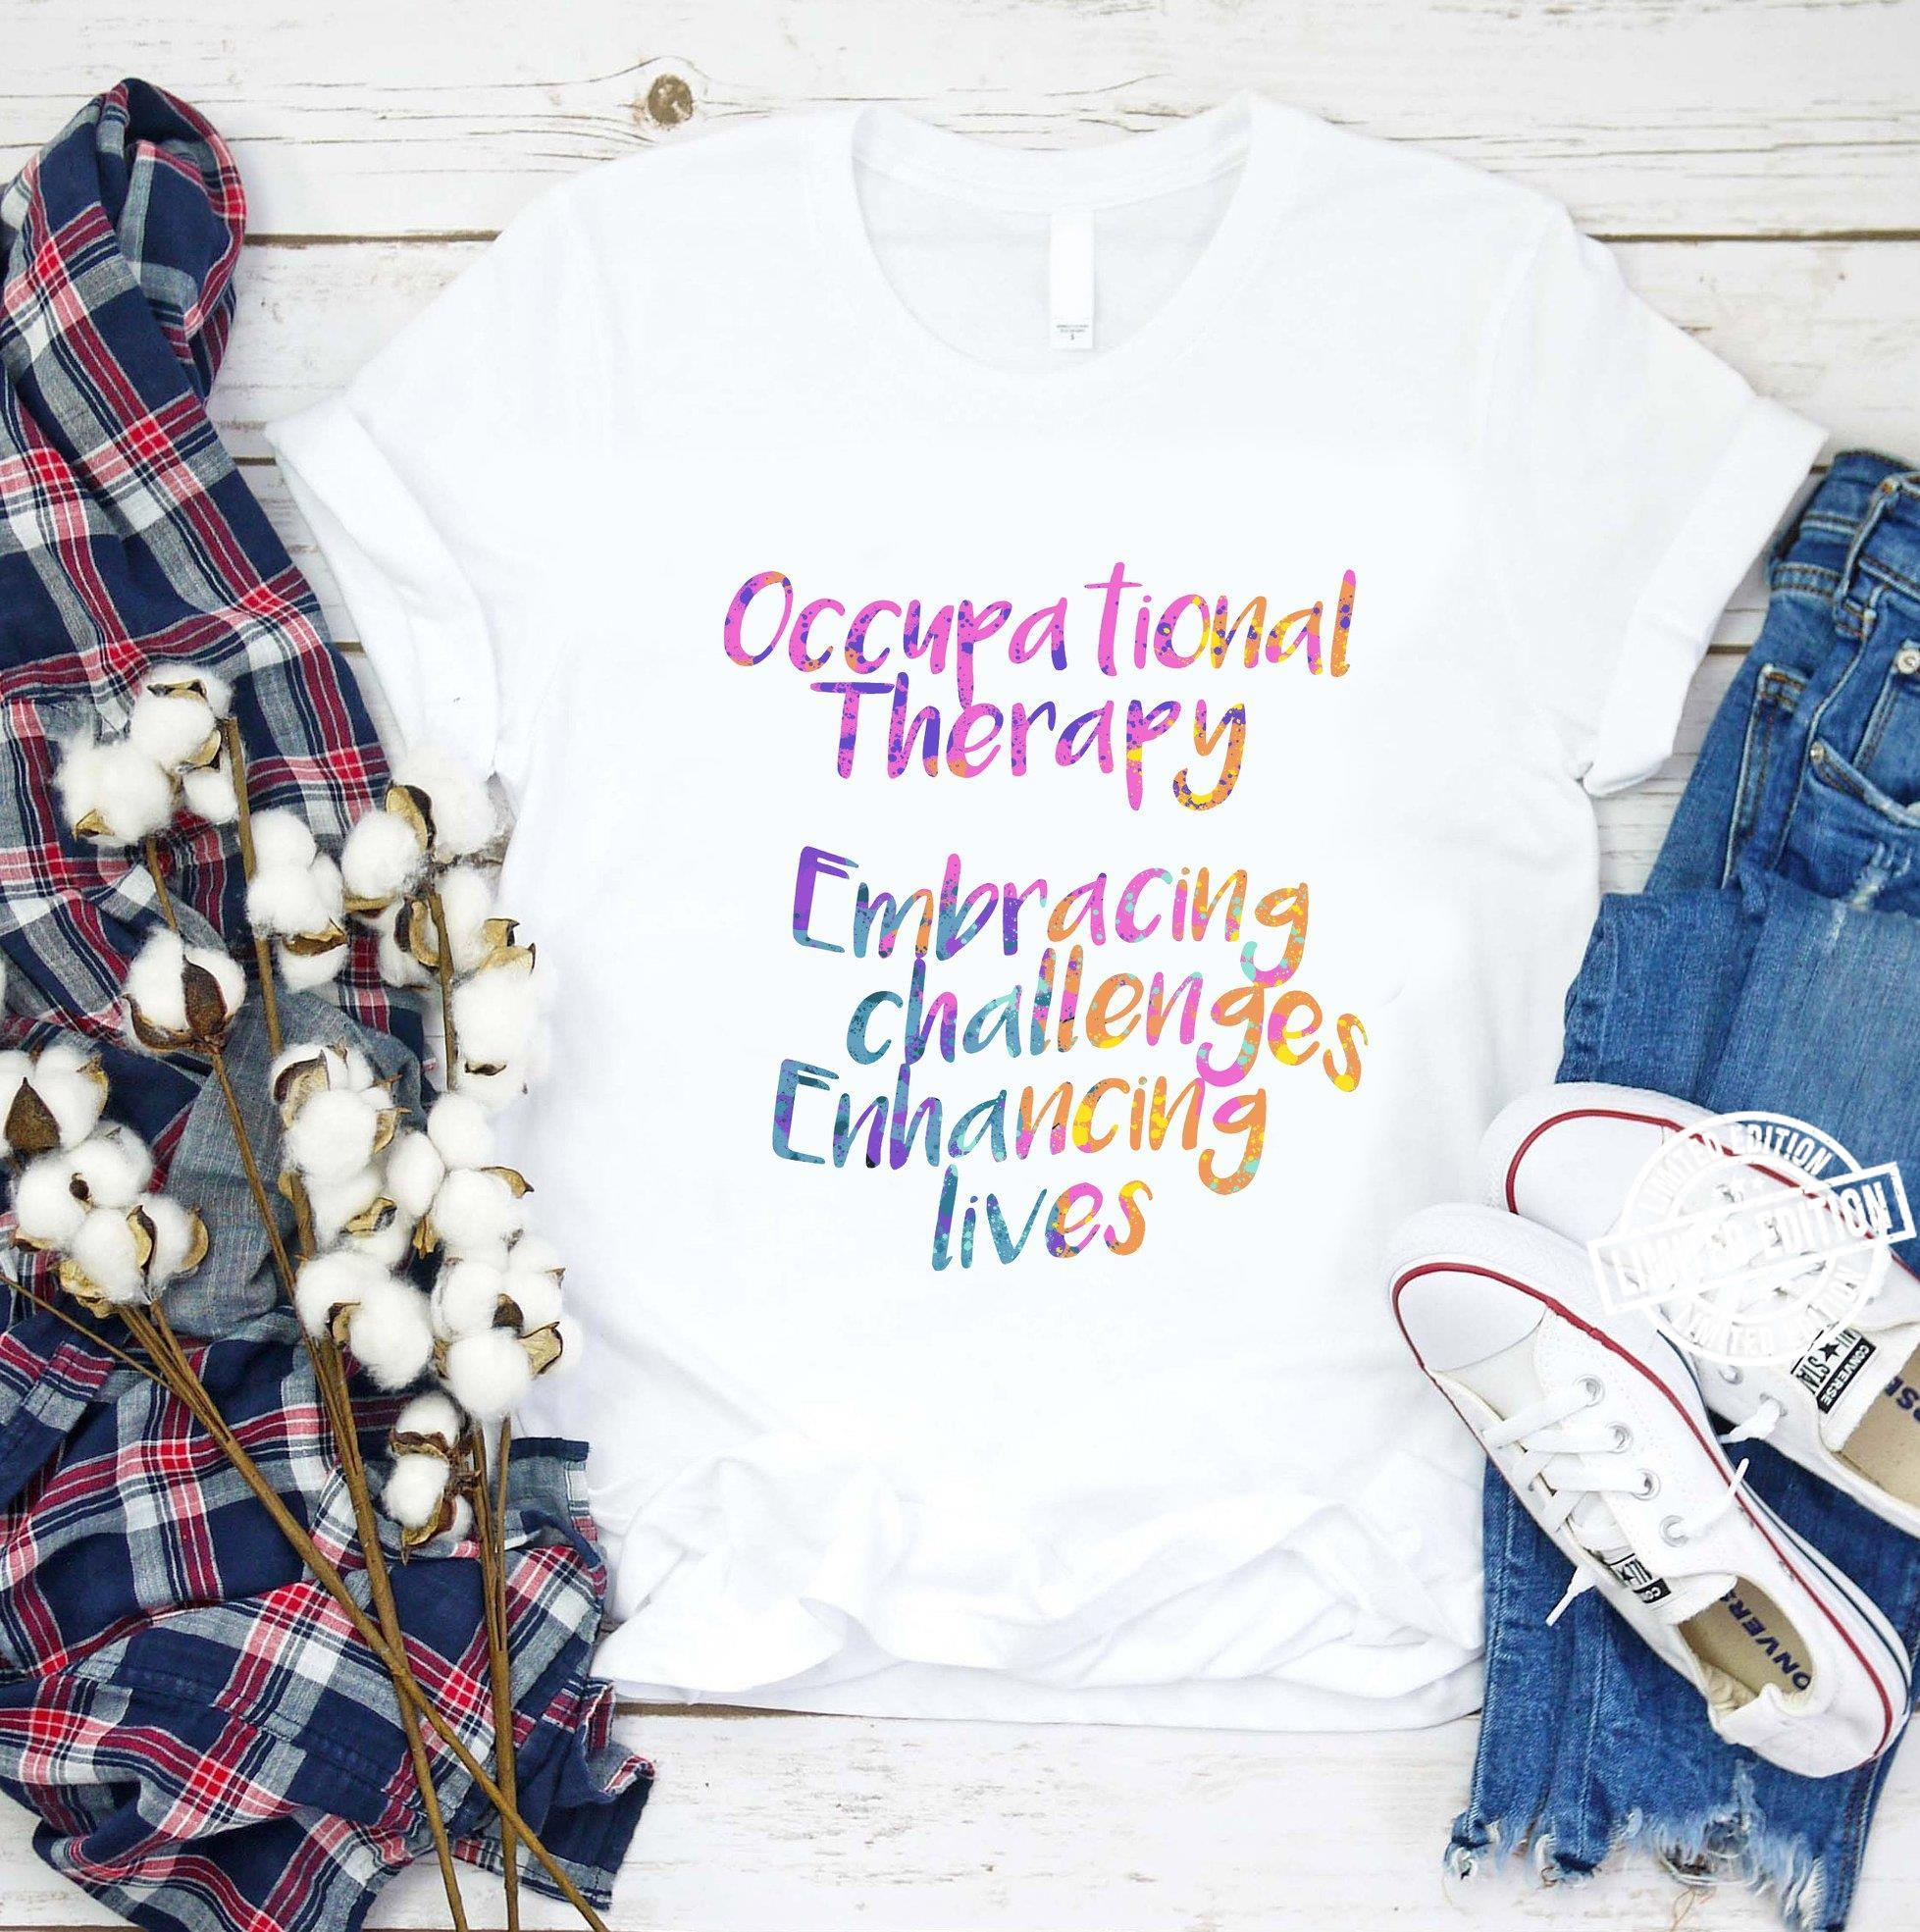 Occupational therapy embracing challenges enhancing lives shirt